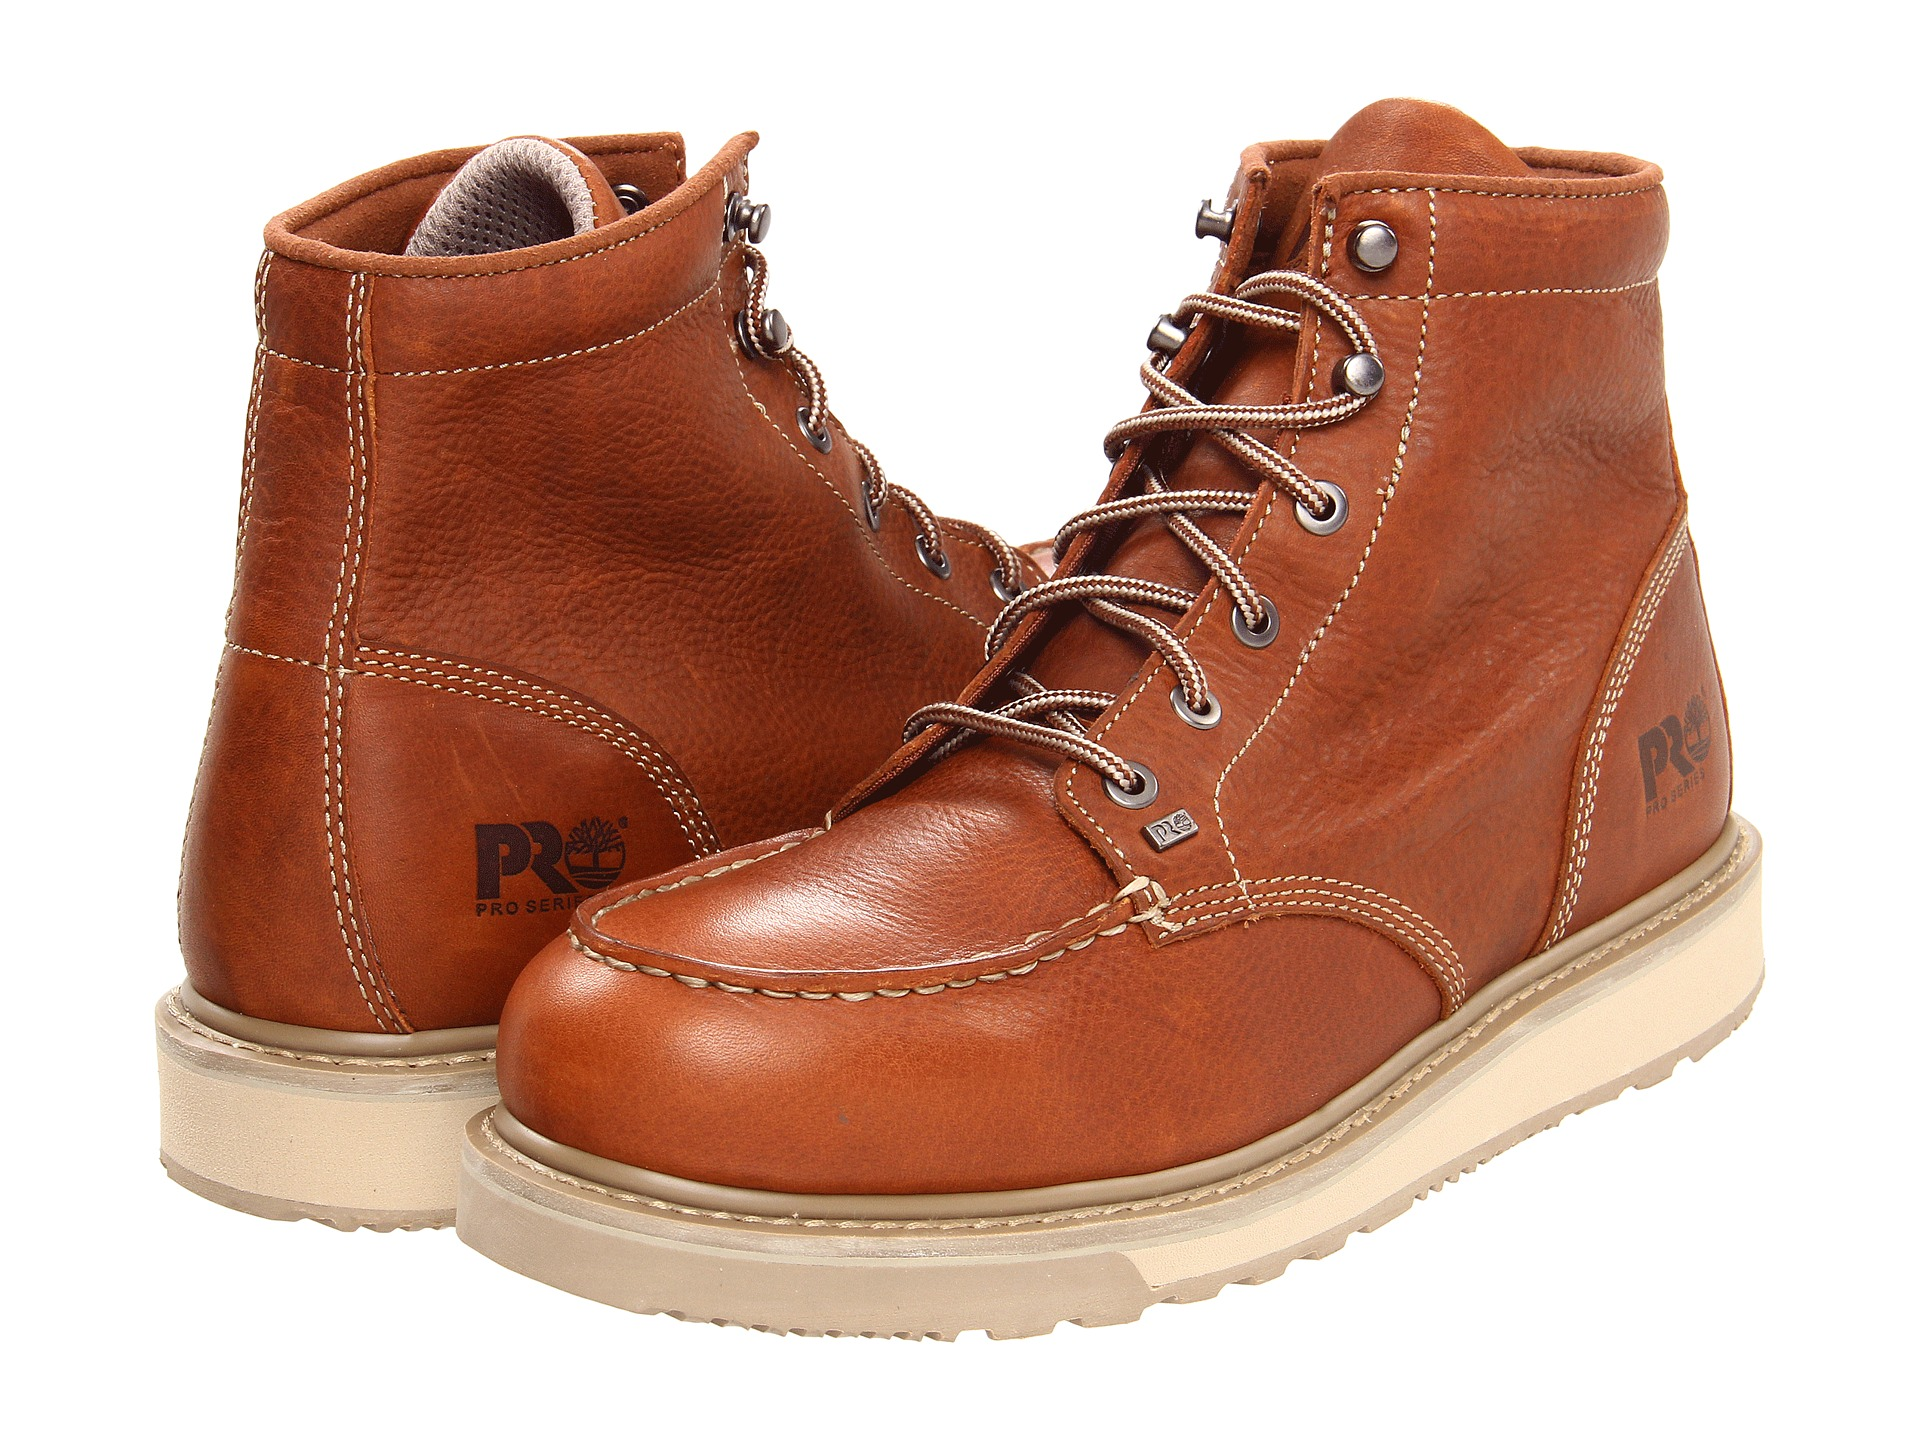 Timberland PRO Barstow Wedge Soft Toe - Zappos.com Free ... Timberland Pro